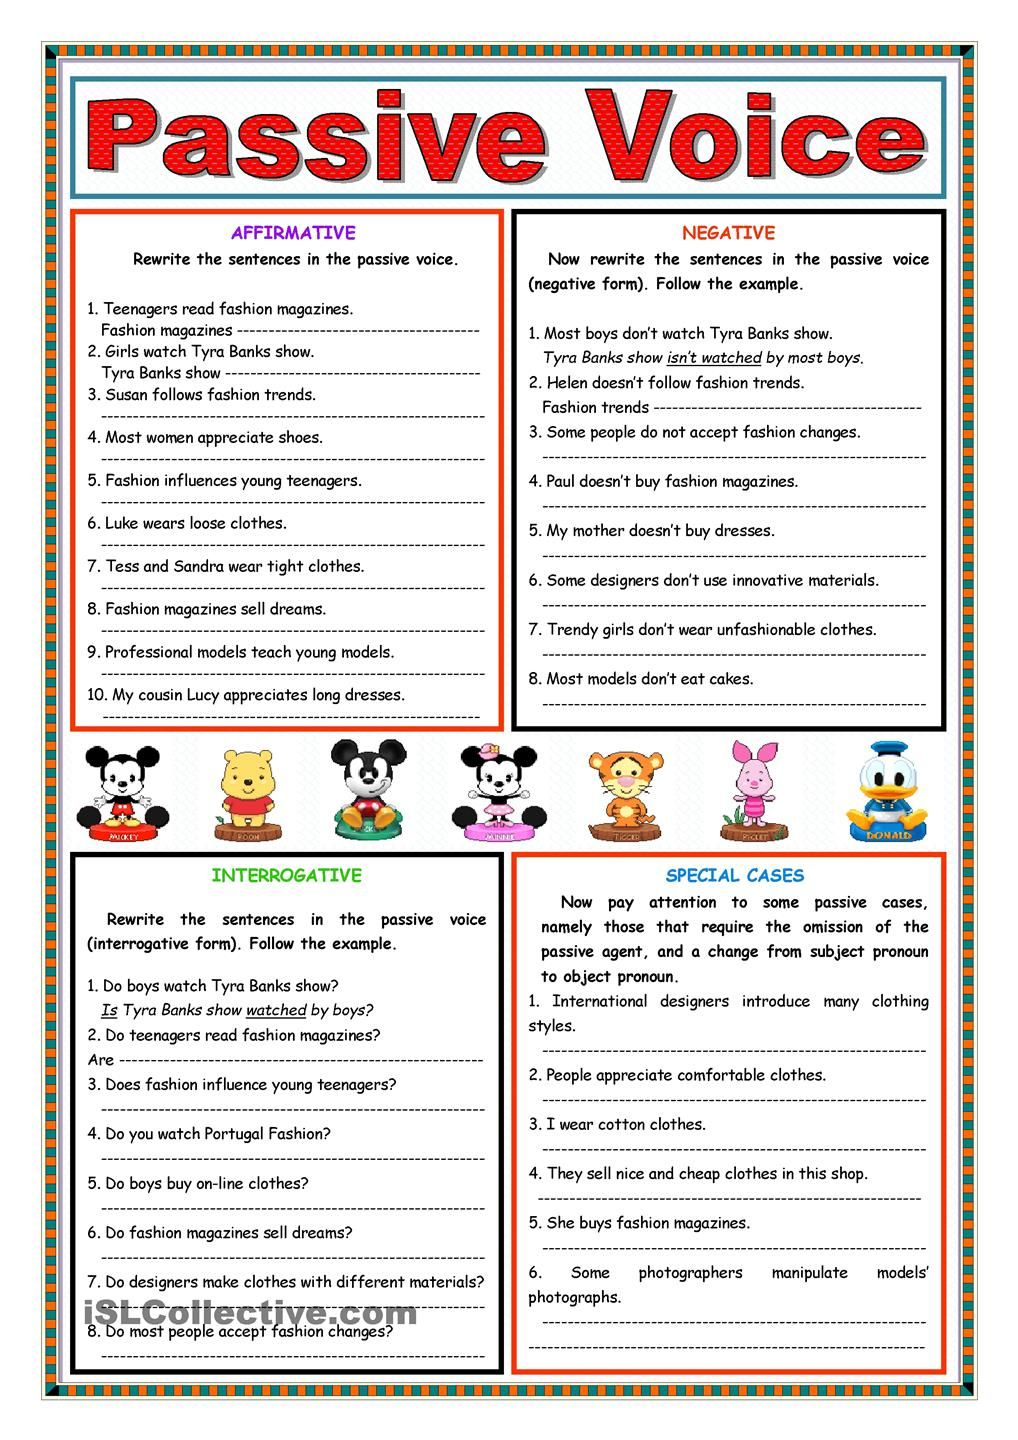 worksheet Passive Voice Worksheet passive voice present simple pinterest worksheet free esl printable worksheets made by teachers